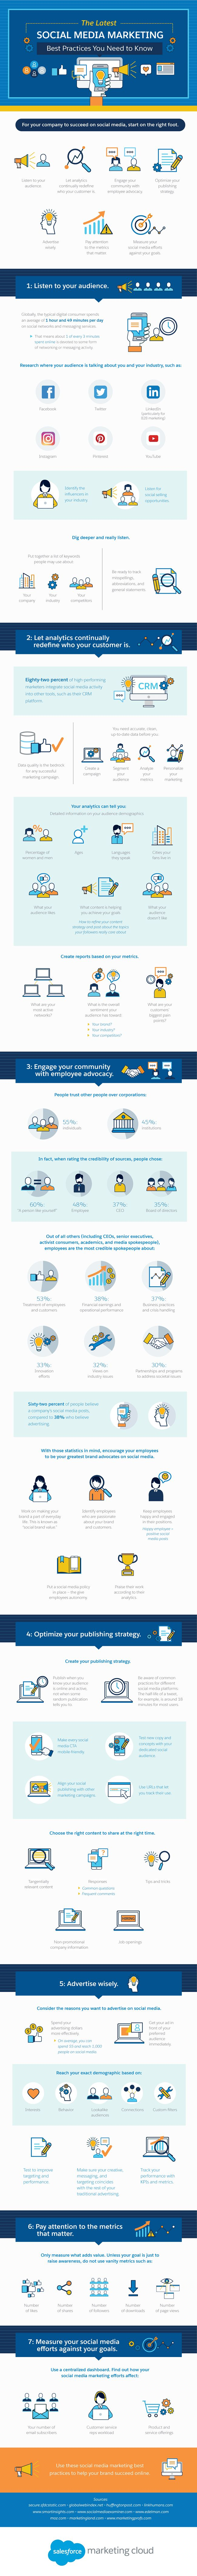 The Latest Social Media Marketing Best Practices You Need to Know - #Infographic #InfographicsSocialMedia